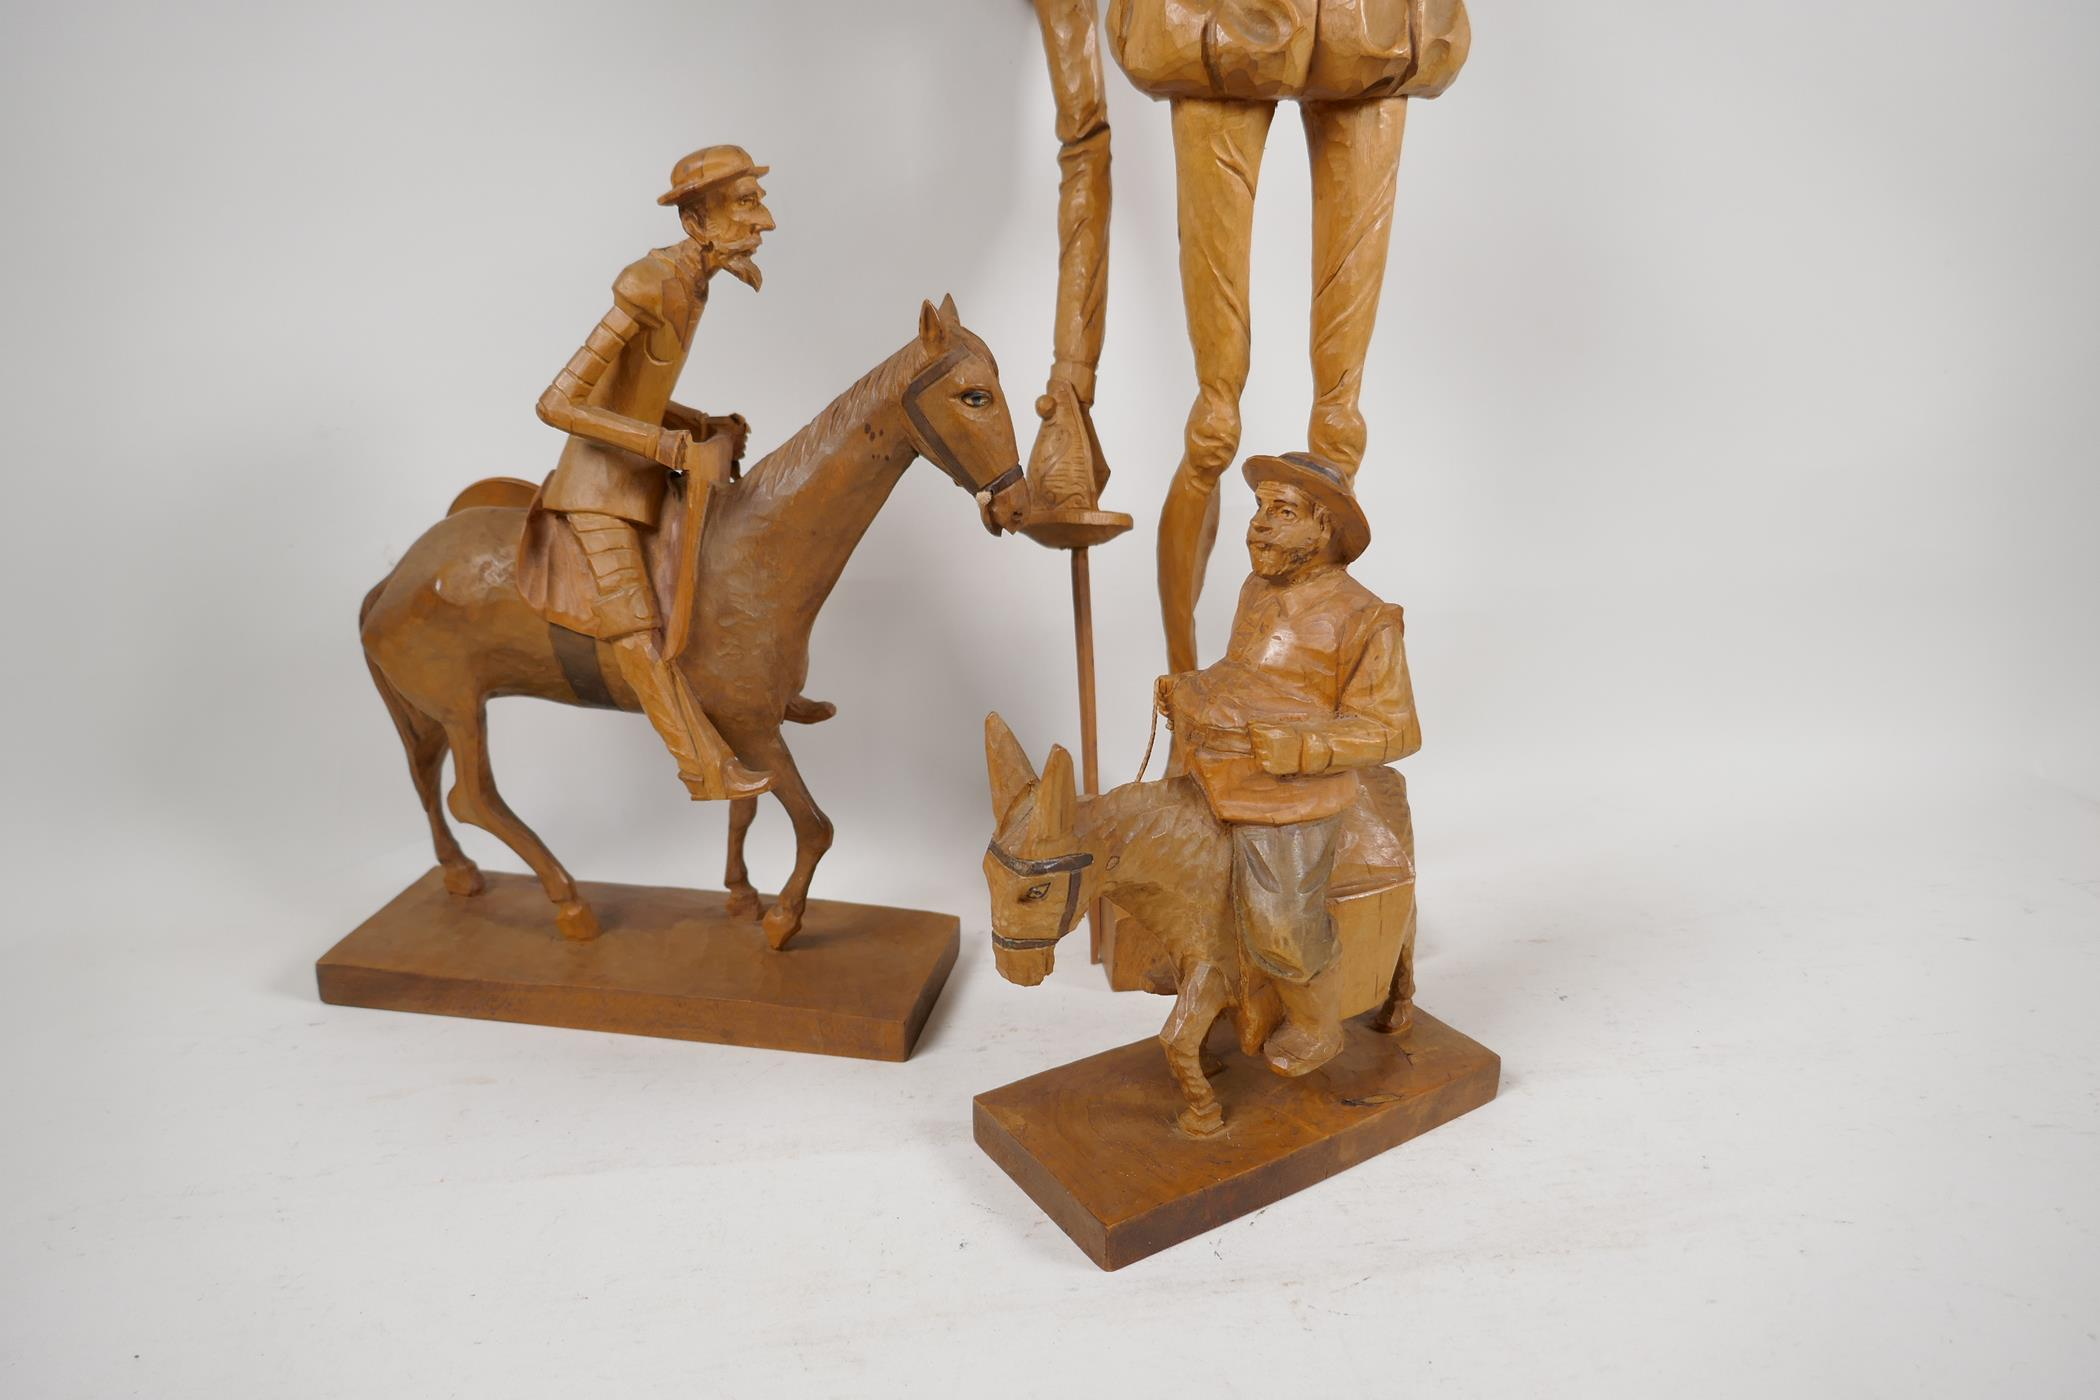 Two carved wood models of Don Quioxte and Sancho Panza, and a carved wood figure of the Don, A/F - Image 4 of 6